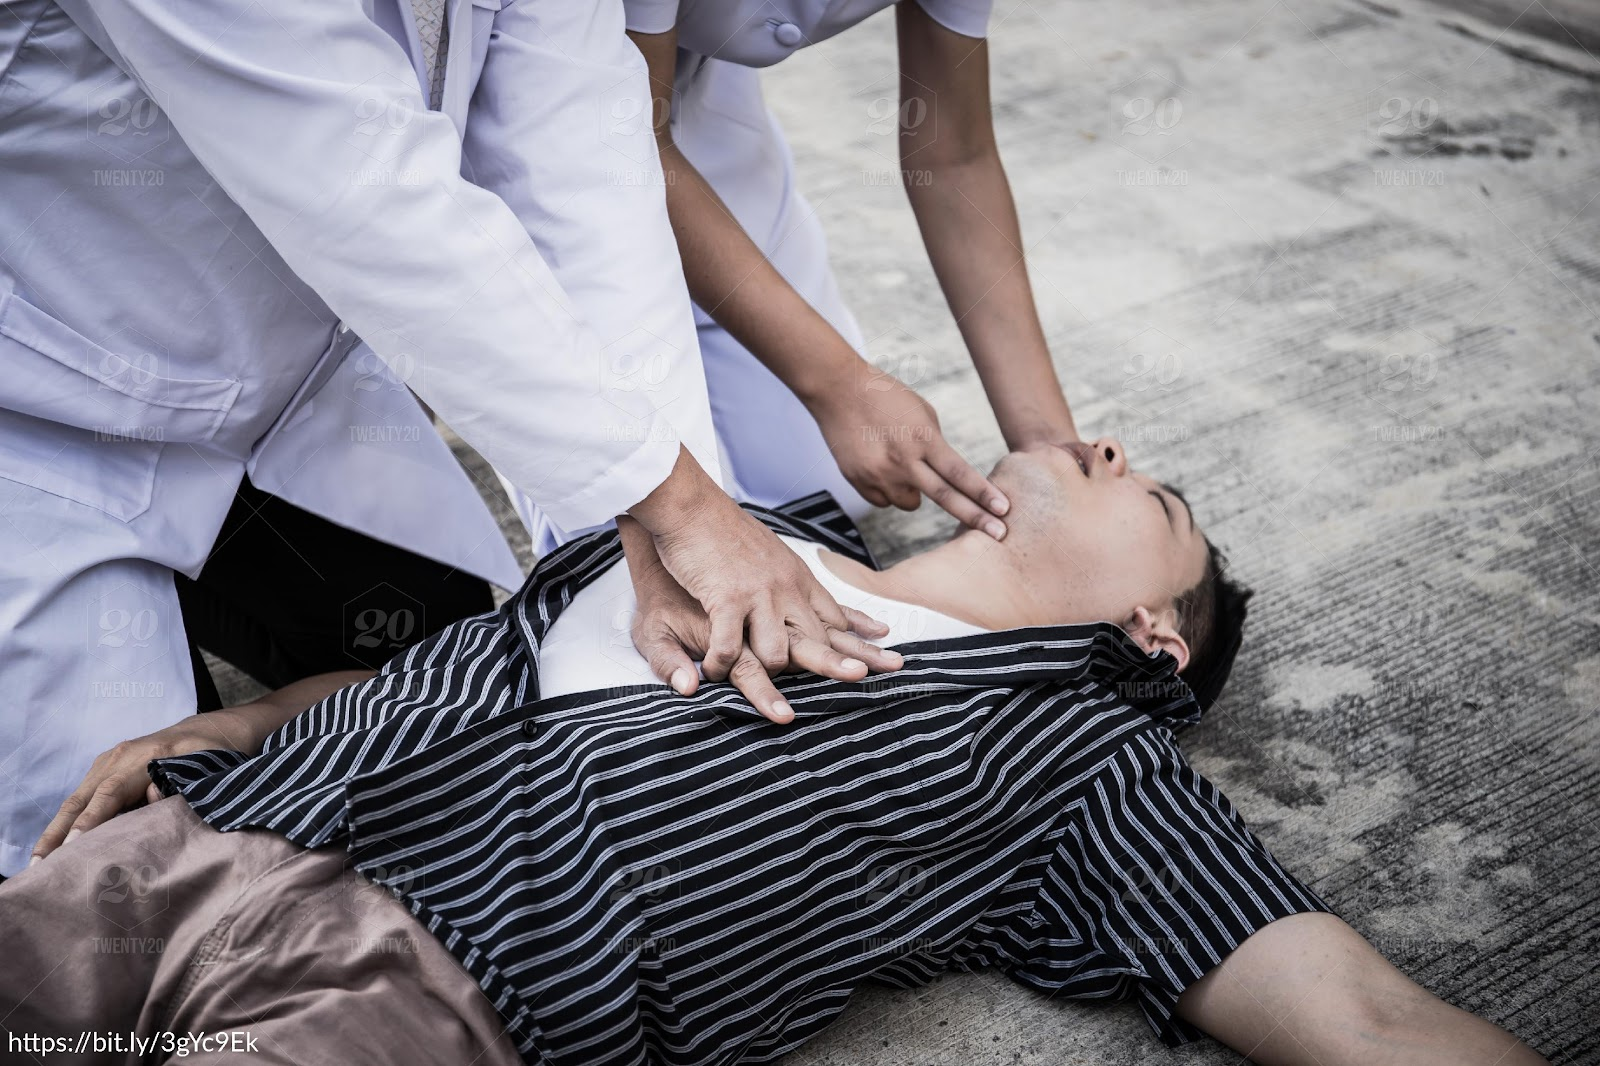 Sudden Cardiac Arrest - 4 Things to Know